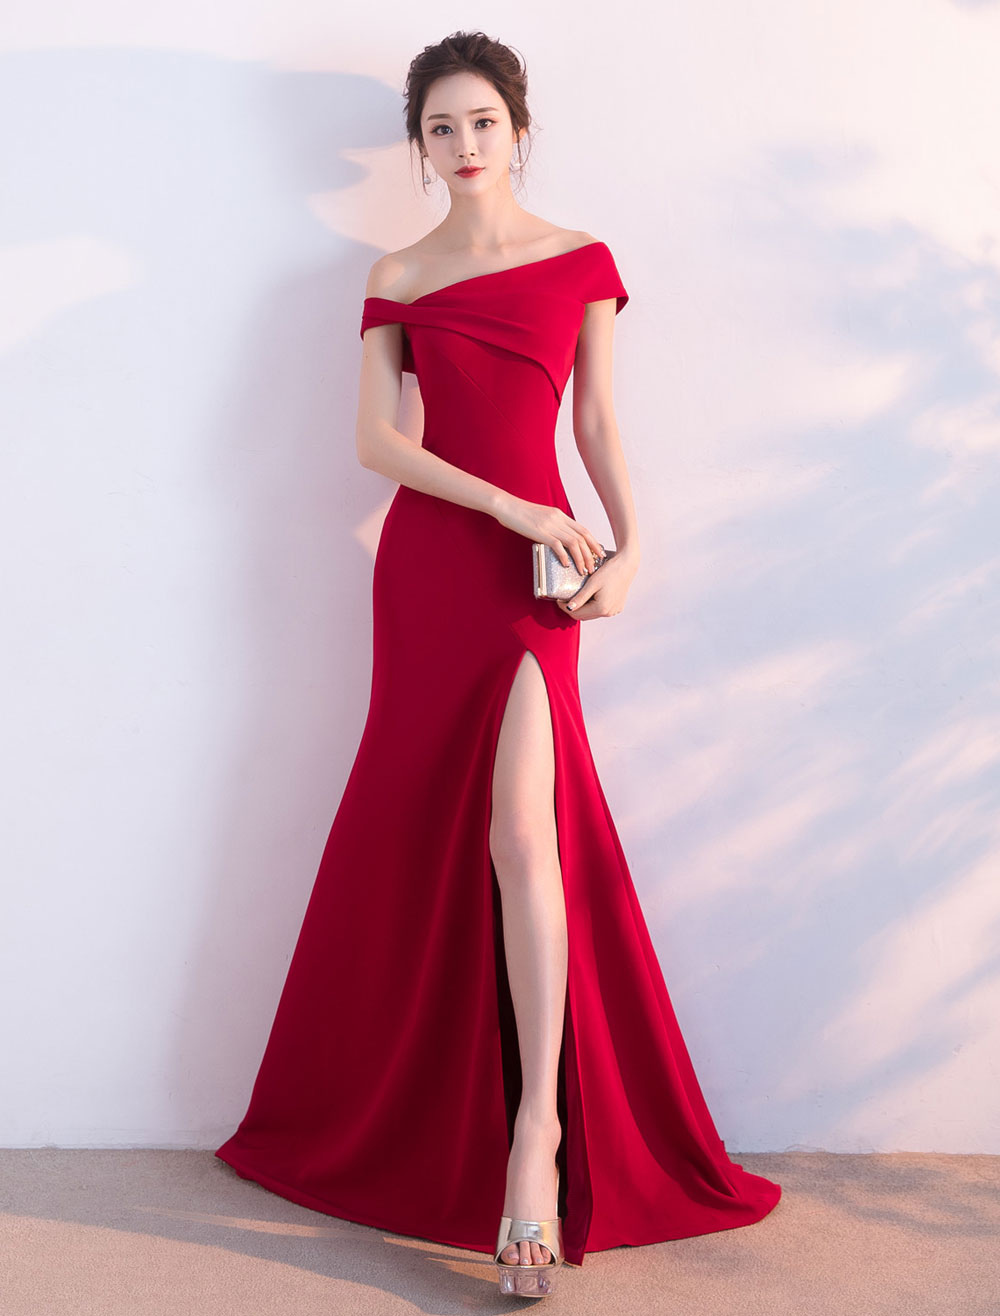 0abce83d8d9 ... Burgundy Evening Dresses Off The Shoulder Formal Dress Sexy High Split Elastic  Silk Like Satin Party. 1. 32%OFF. Color Burgundy